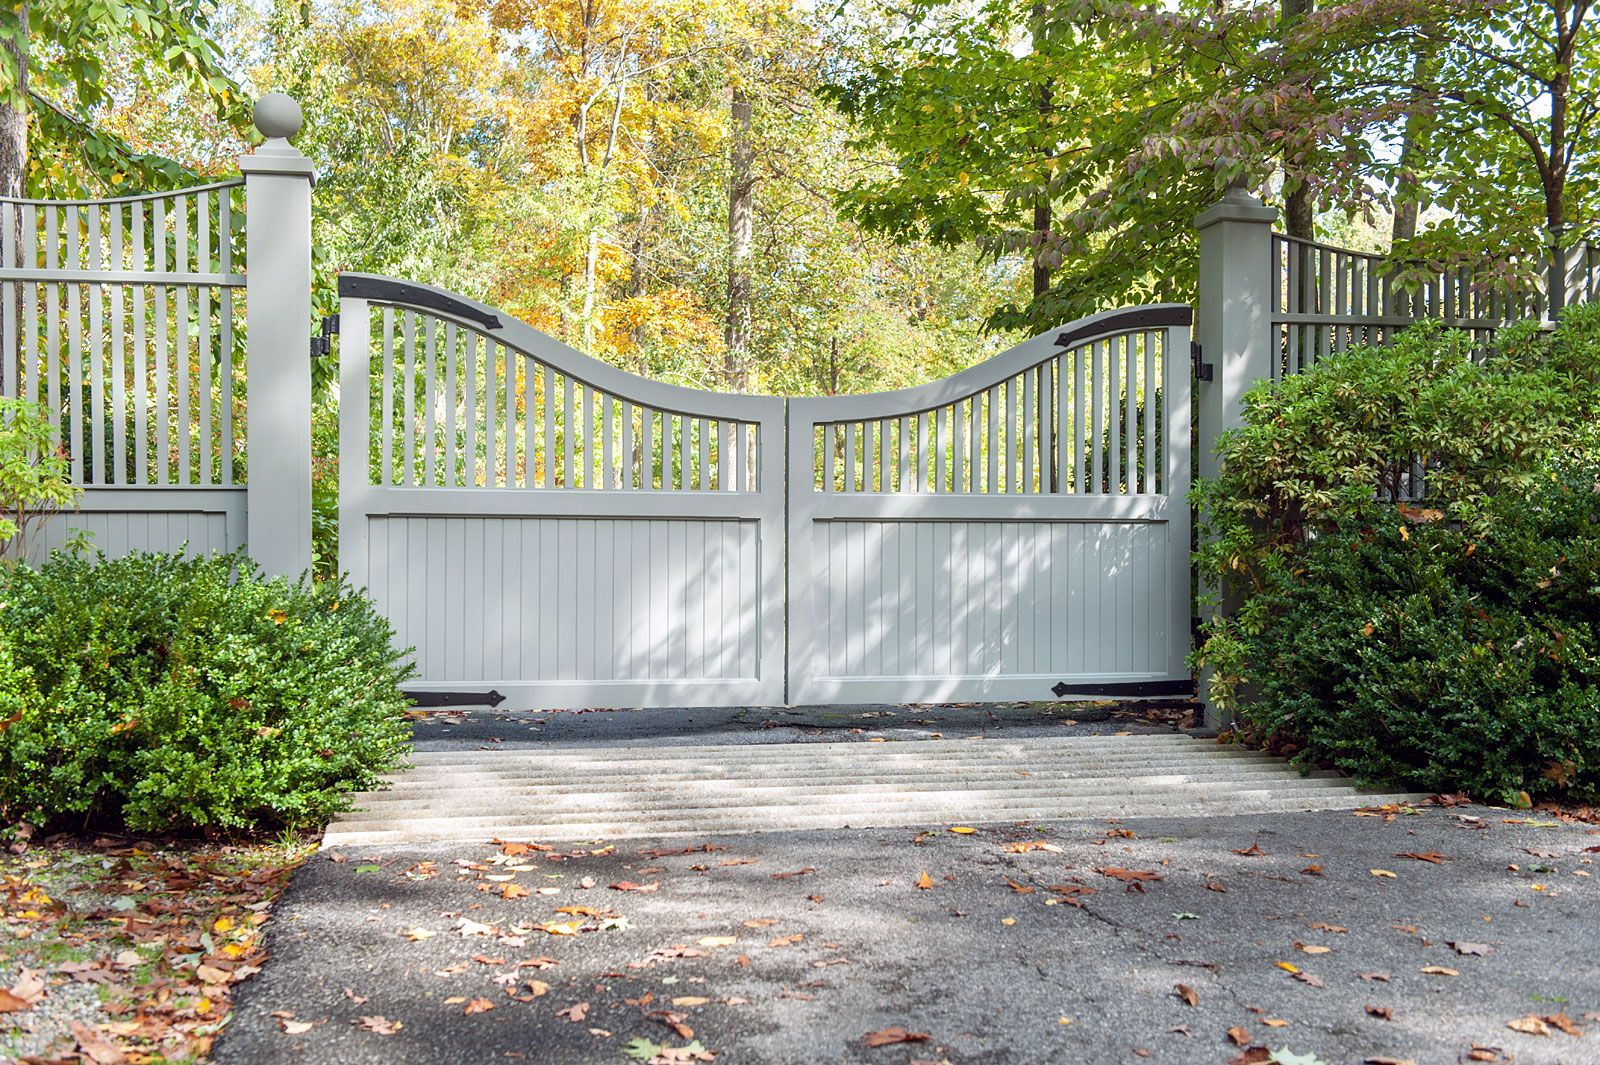 Nice Updated Classic Design For A White Wood Driveway Gate On A More Narrow Entryway Designed And Installed By Driveway Gate Wooden Gates Driveway Farm Gate